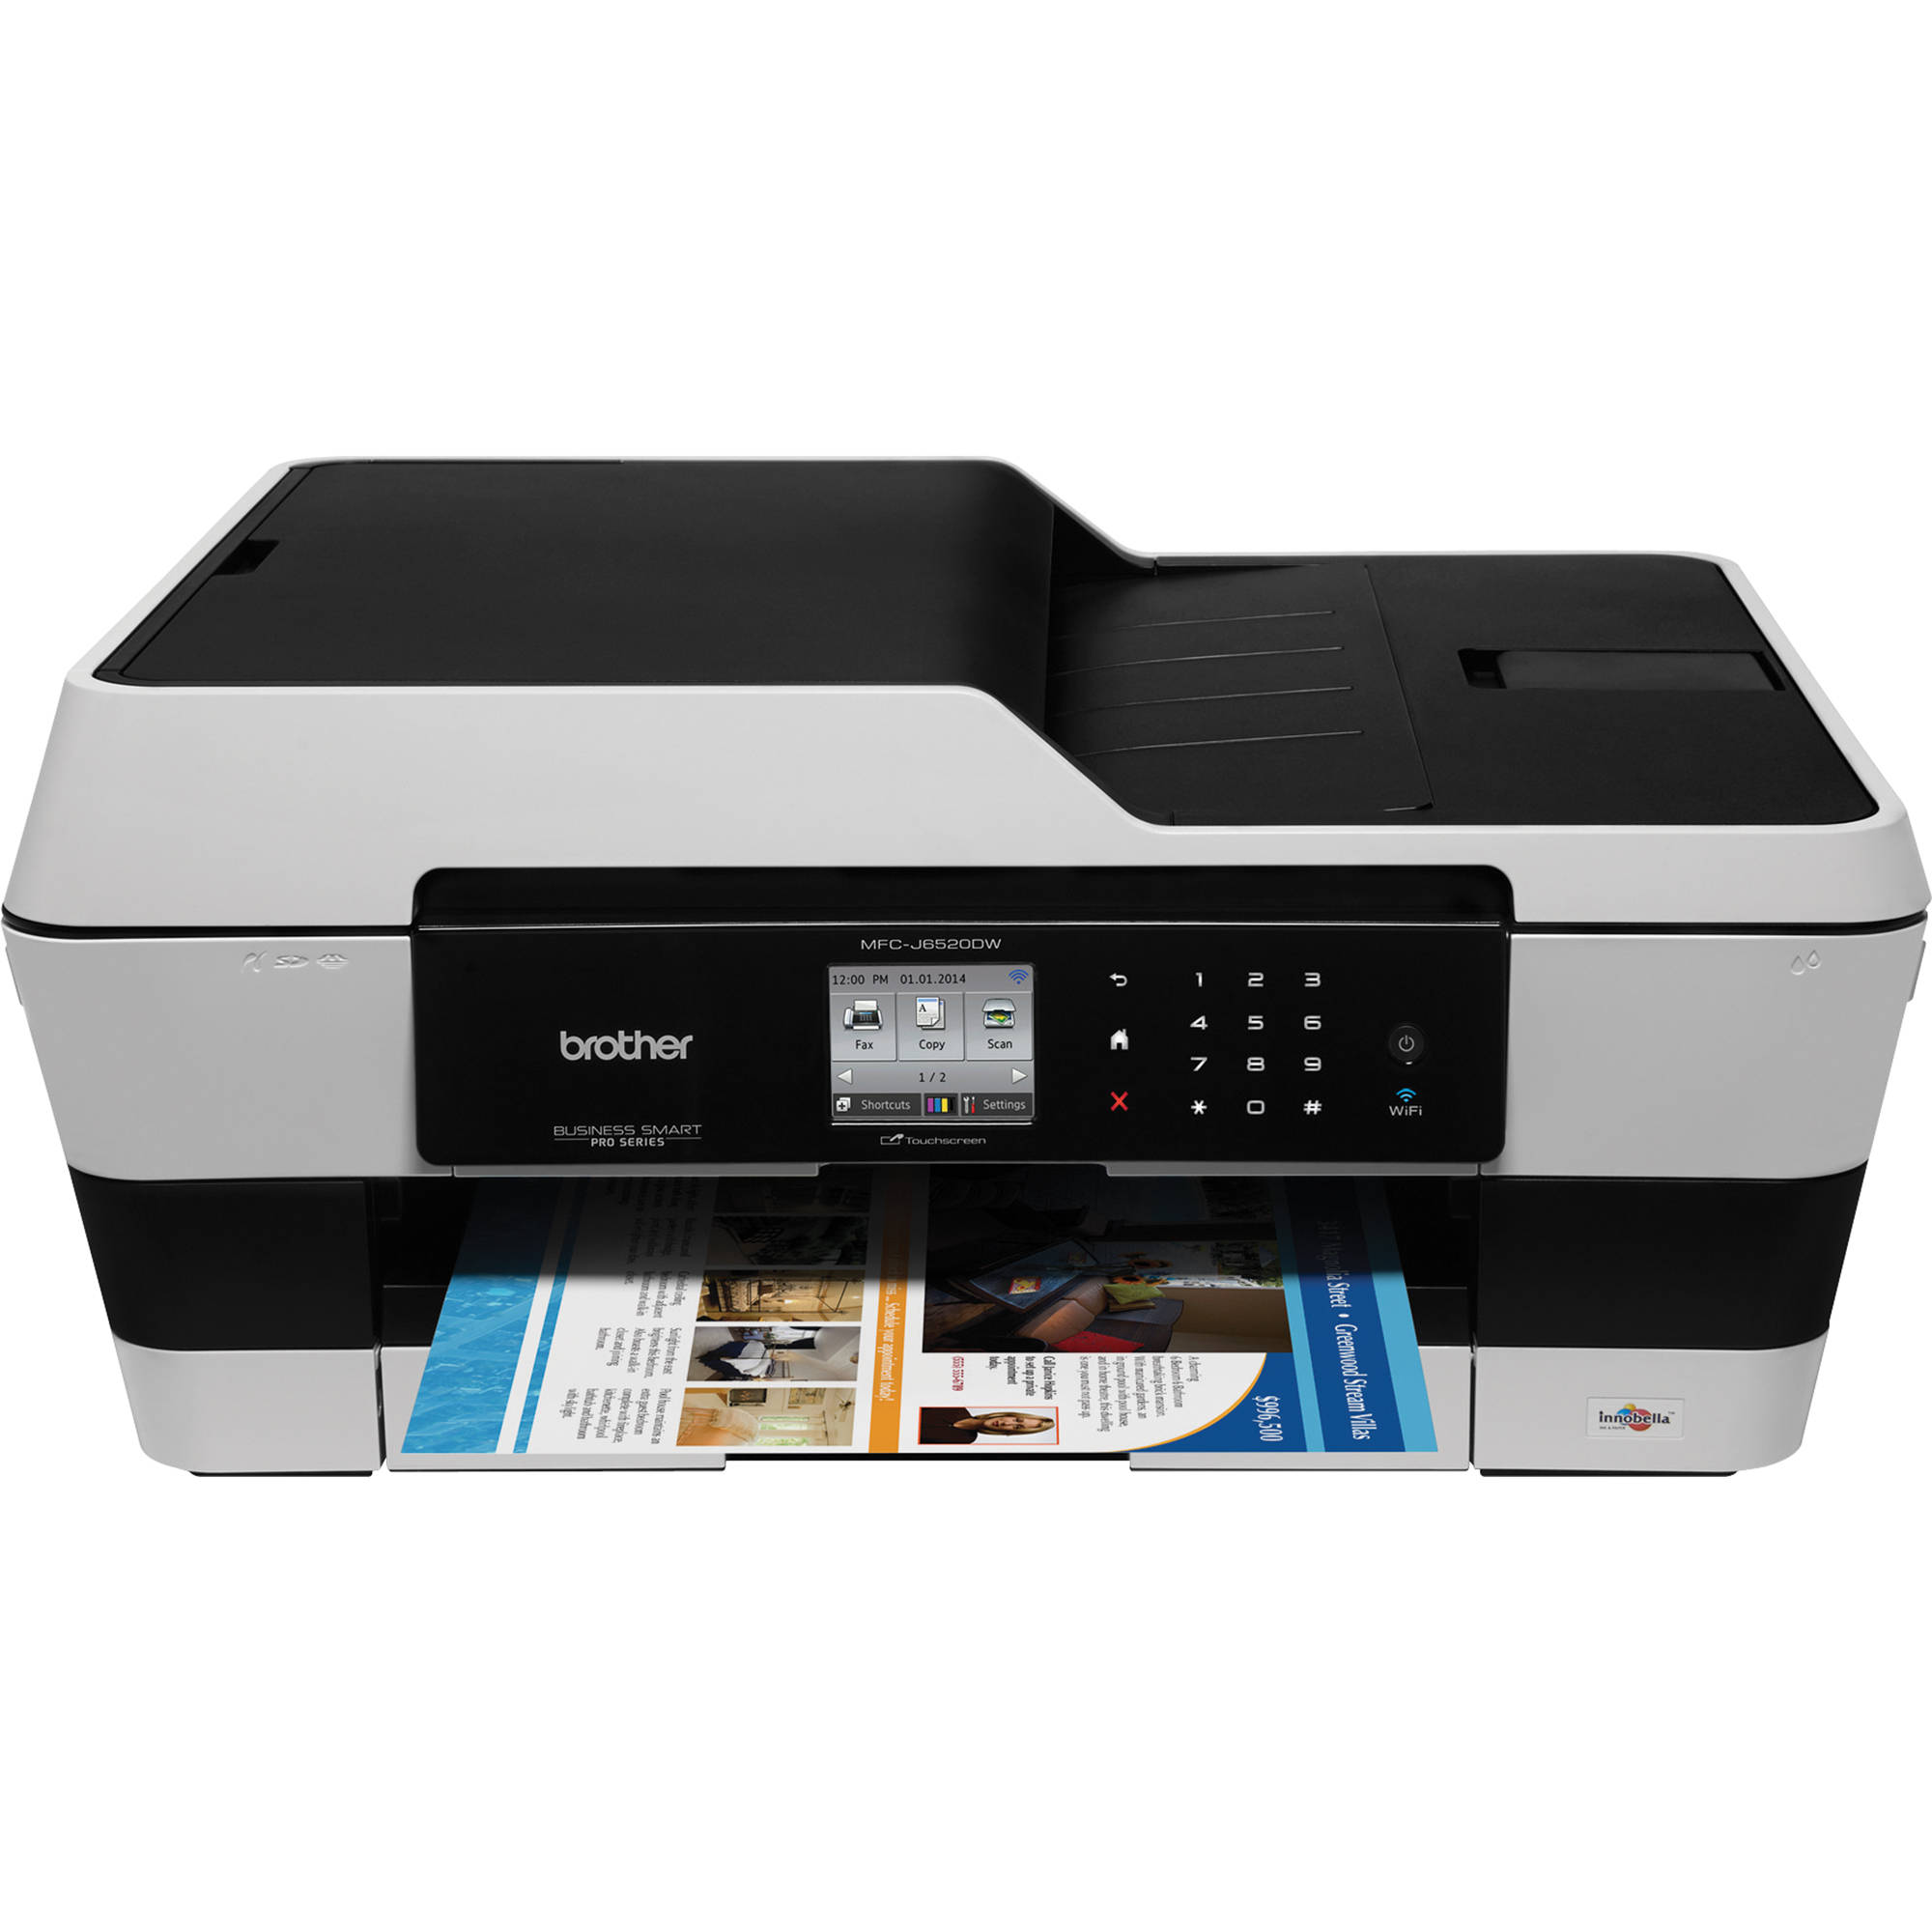 Brother MFC J6520DW Wireless Color All In One Inkjet MFC